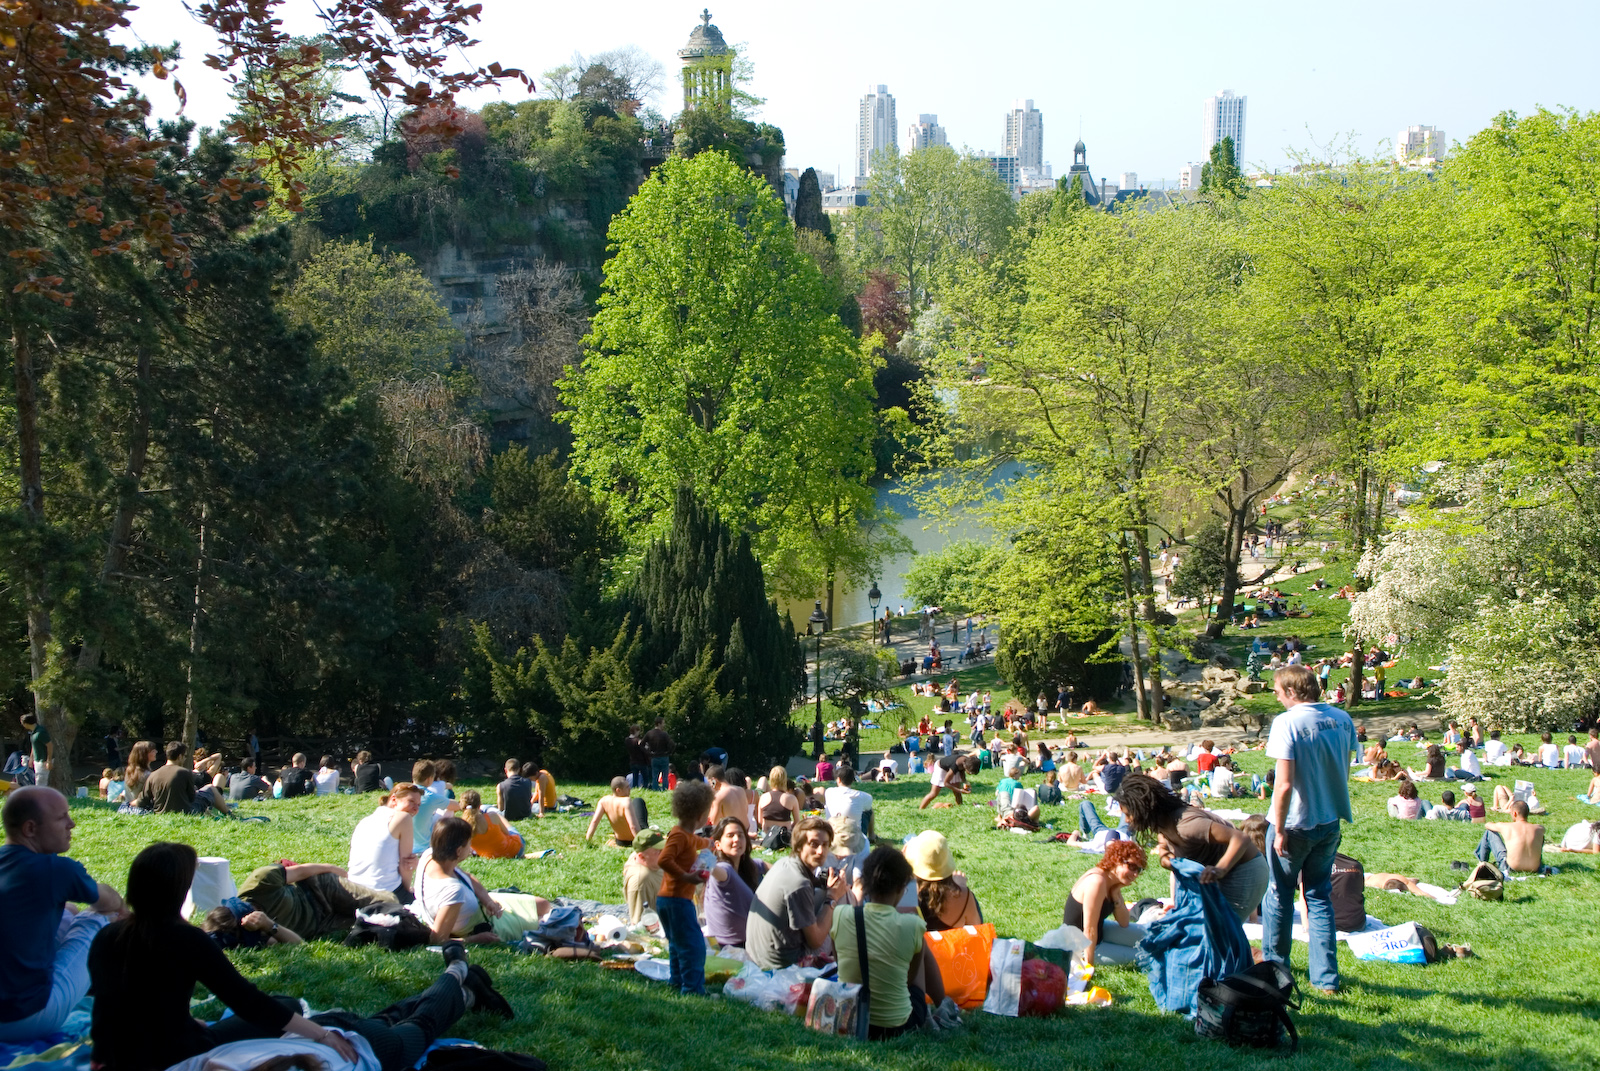 Parc des Buttes-Chaumont - The Parc des Buttes-Chaumont is so cool because it doesn't feel touristy at all. And it's enormous! This park has rolling hills, hiking trails, playgrounds and so many cute dogs to watch. 🐩🐕 Walk over the cool suspension bridge for a view of the whole park.